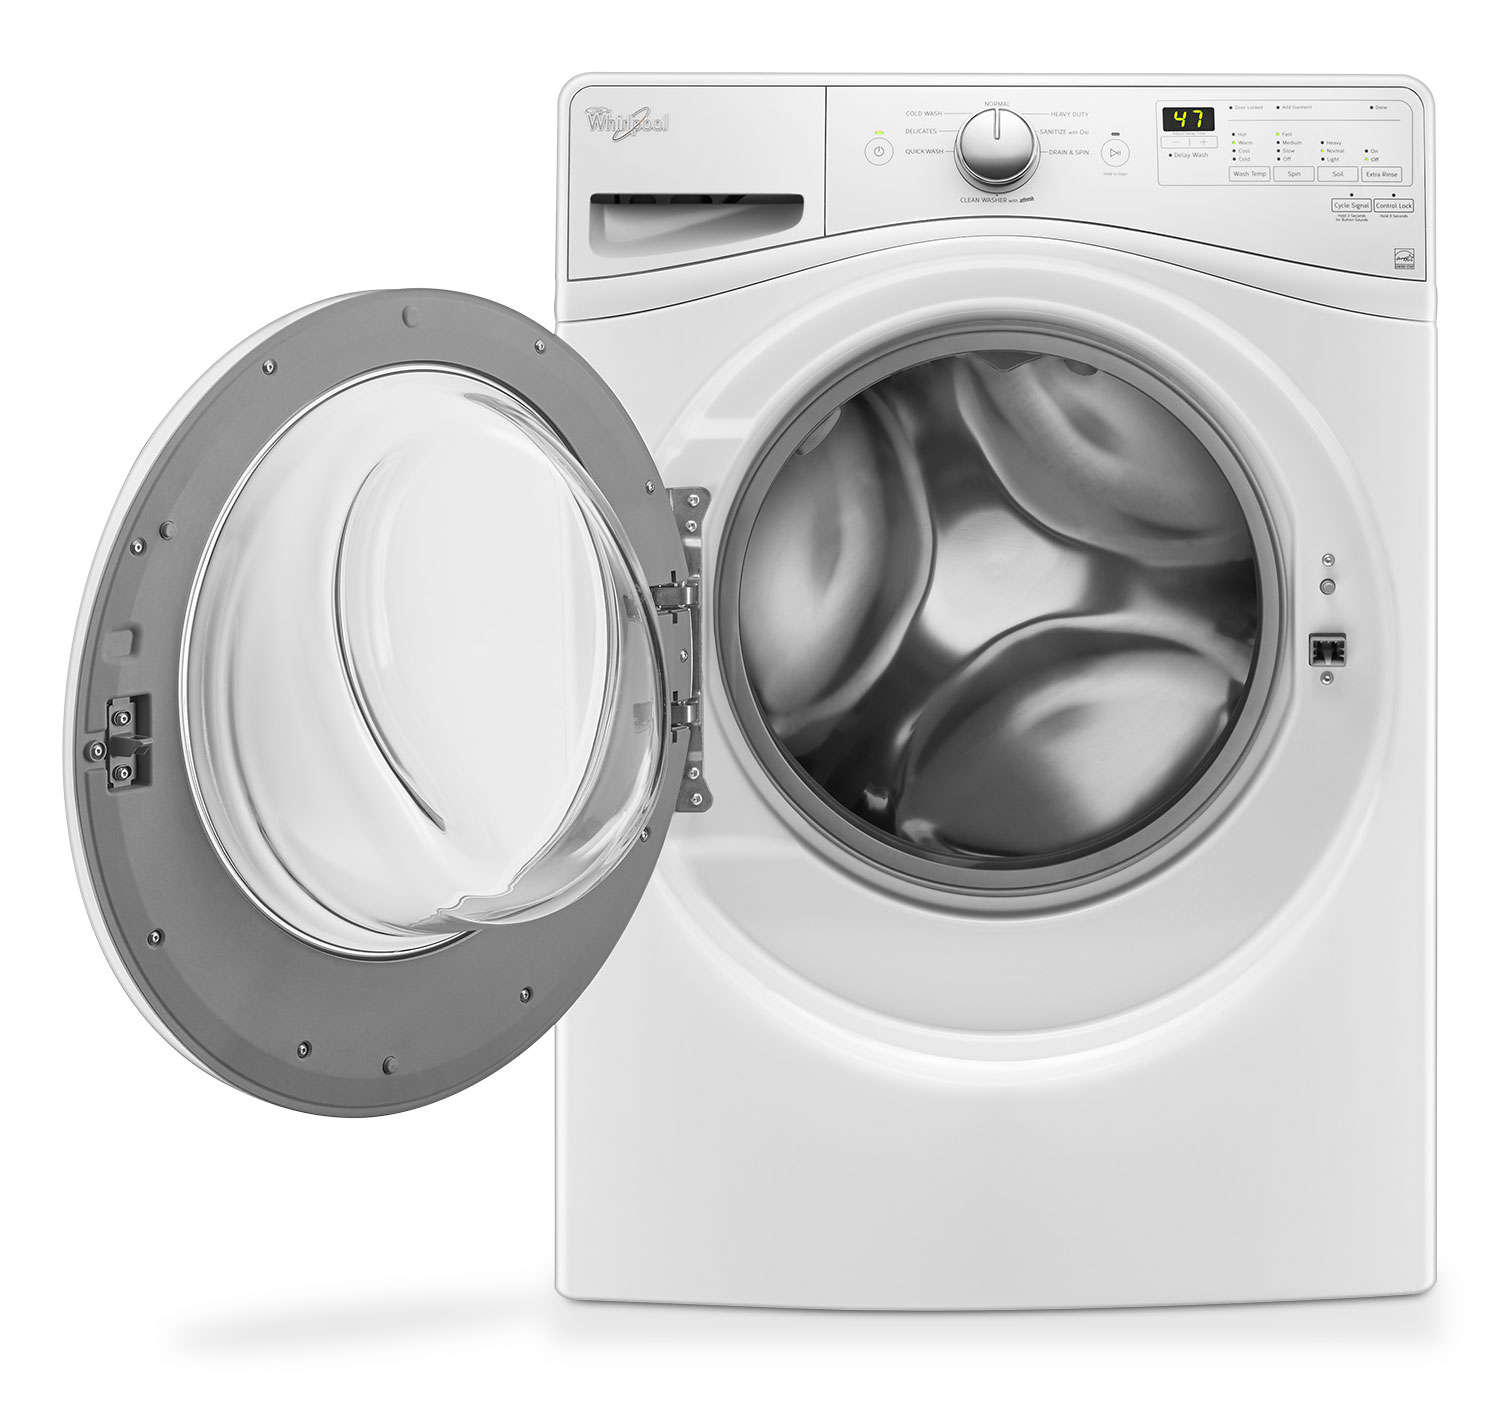 Whirlpool 5.2 Cu. Ft. Front-Load Washer And 7.4 Cu. Ft